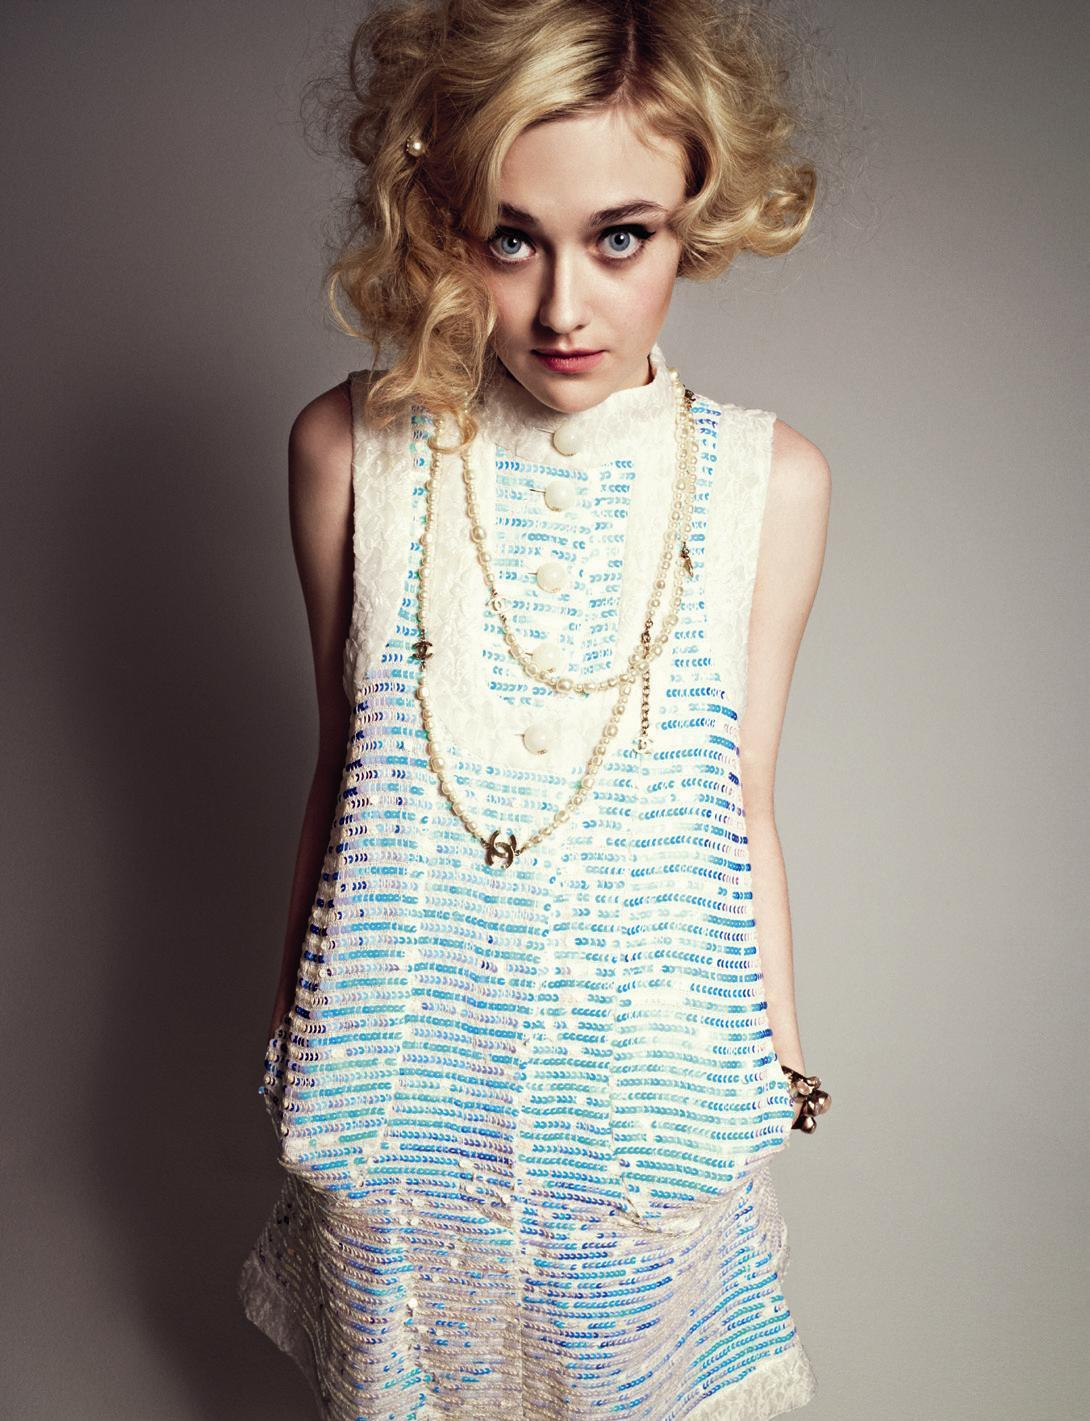 The 30 Best Sexy Pictures of Dakota Fanning I Am Sam Elle Fanning